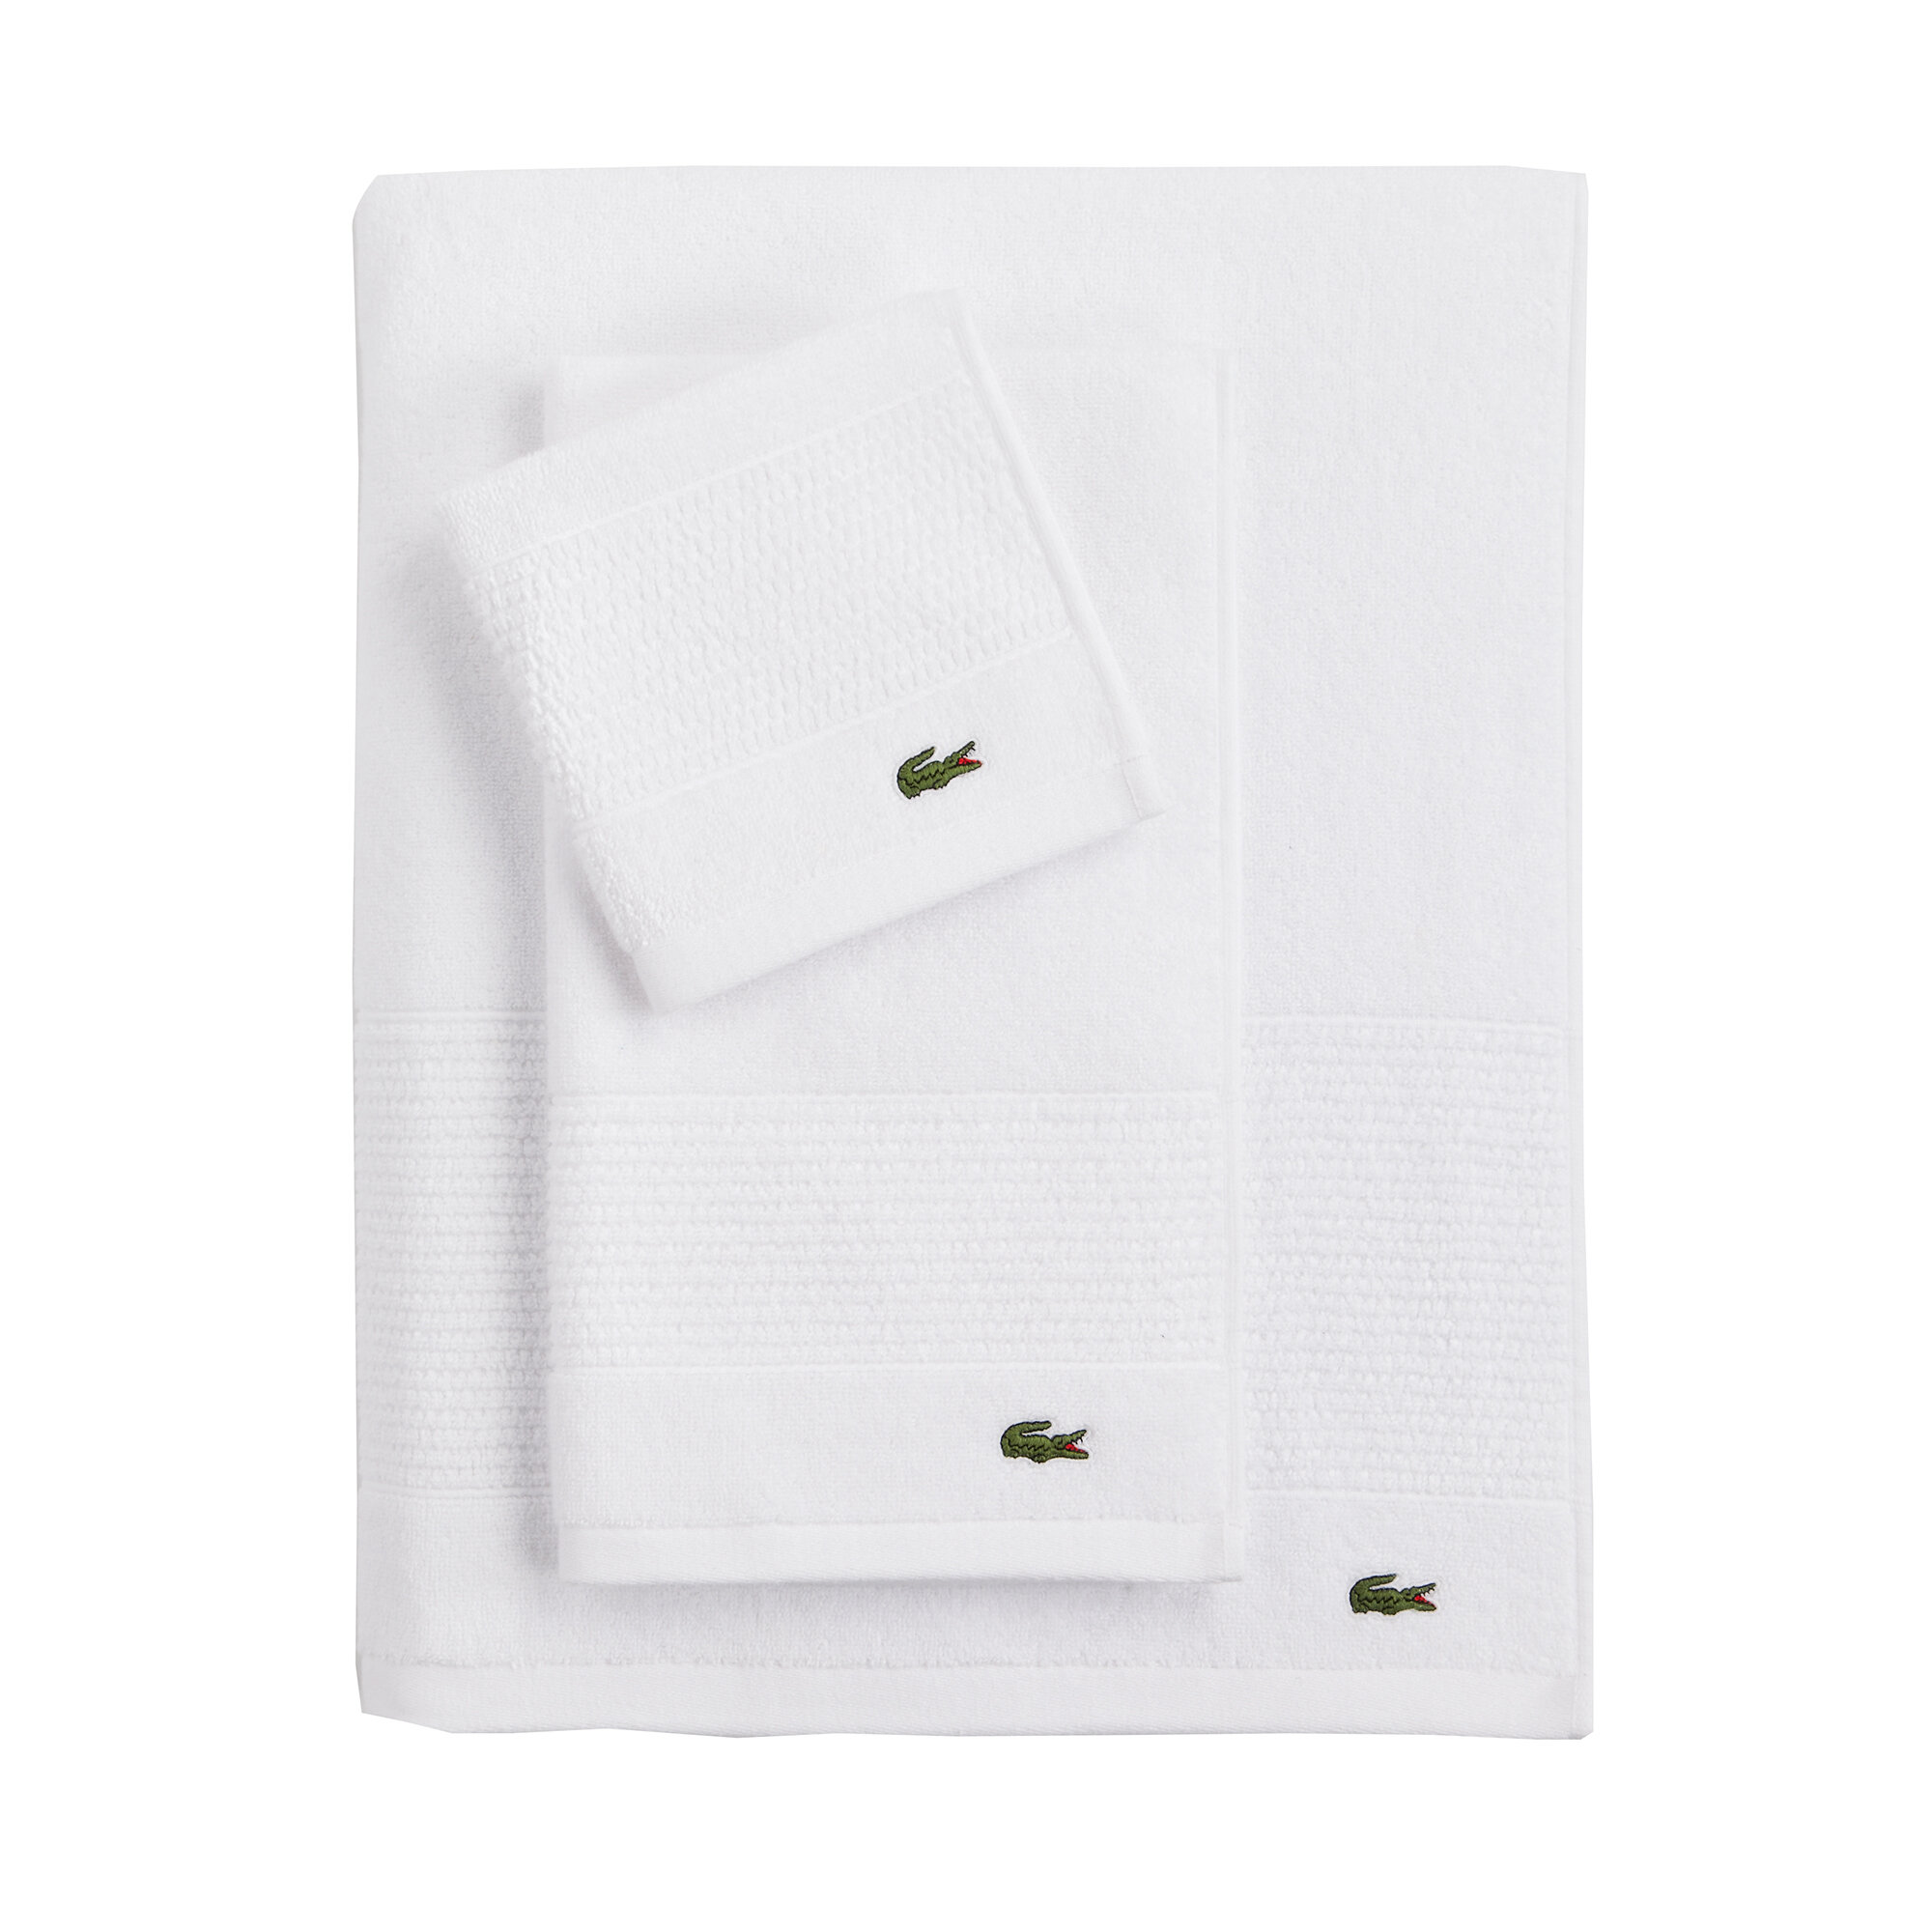 Lacoste Towels Clearance: Lacoste Legend Supima 100% Cotton Hand Towel